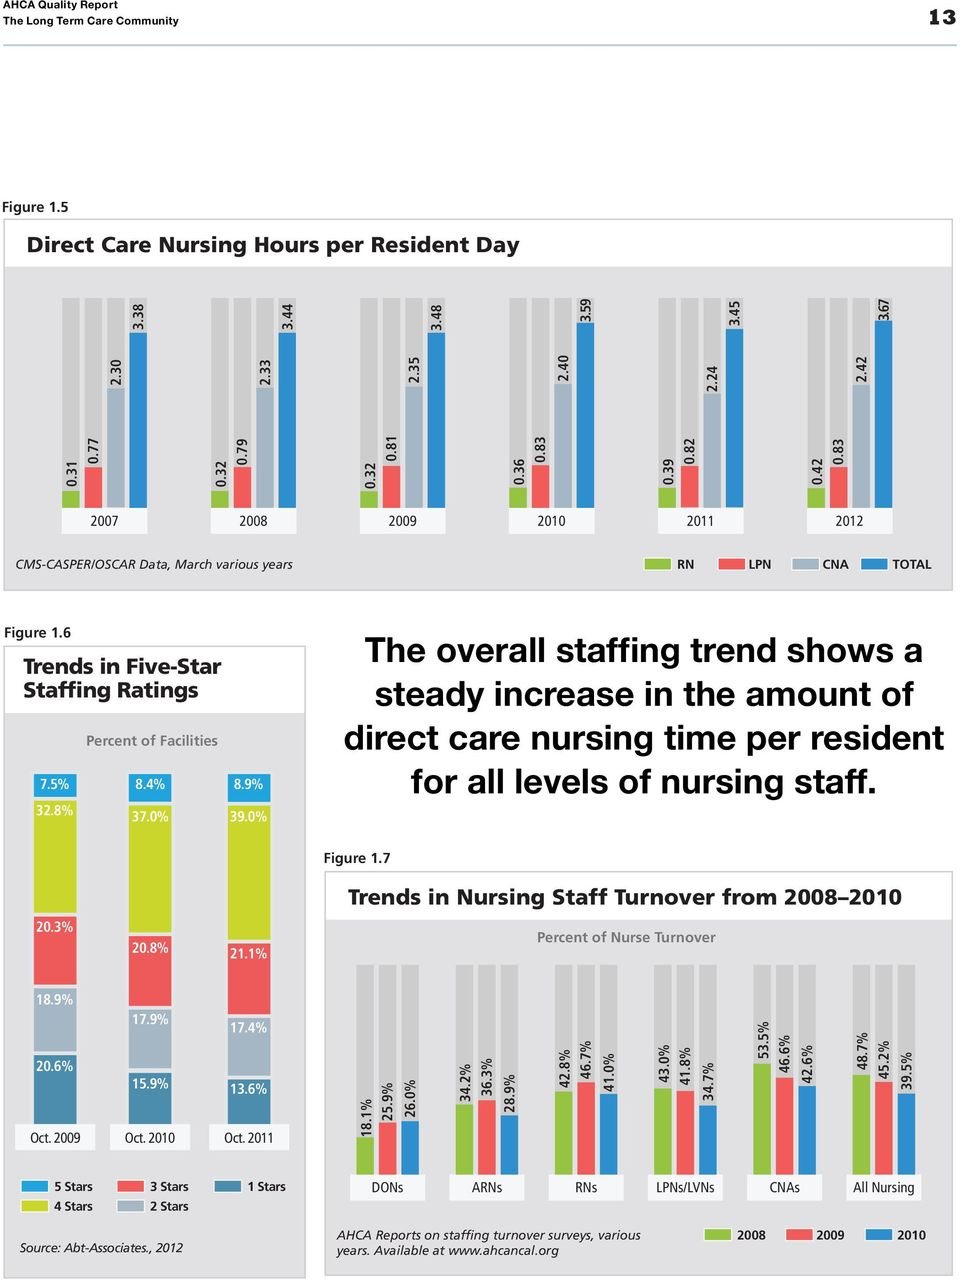 8% Percent of Facilities 8.4% 37.0% 8.9% 39.0% The overall staffing trend shows a steady increase in the amount of direct care nursing time per resident for all levels of nursing staff. Figure 1.